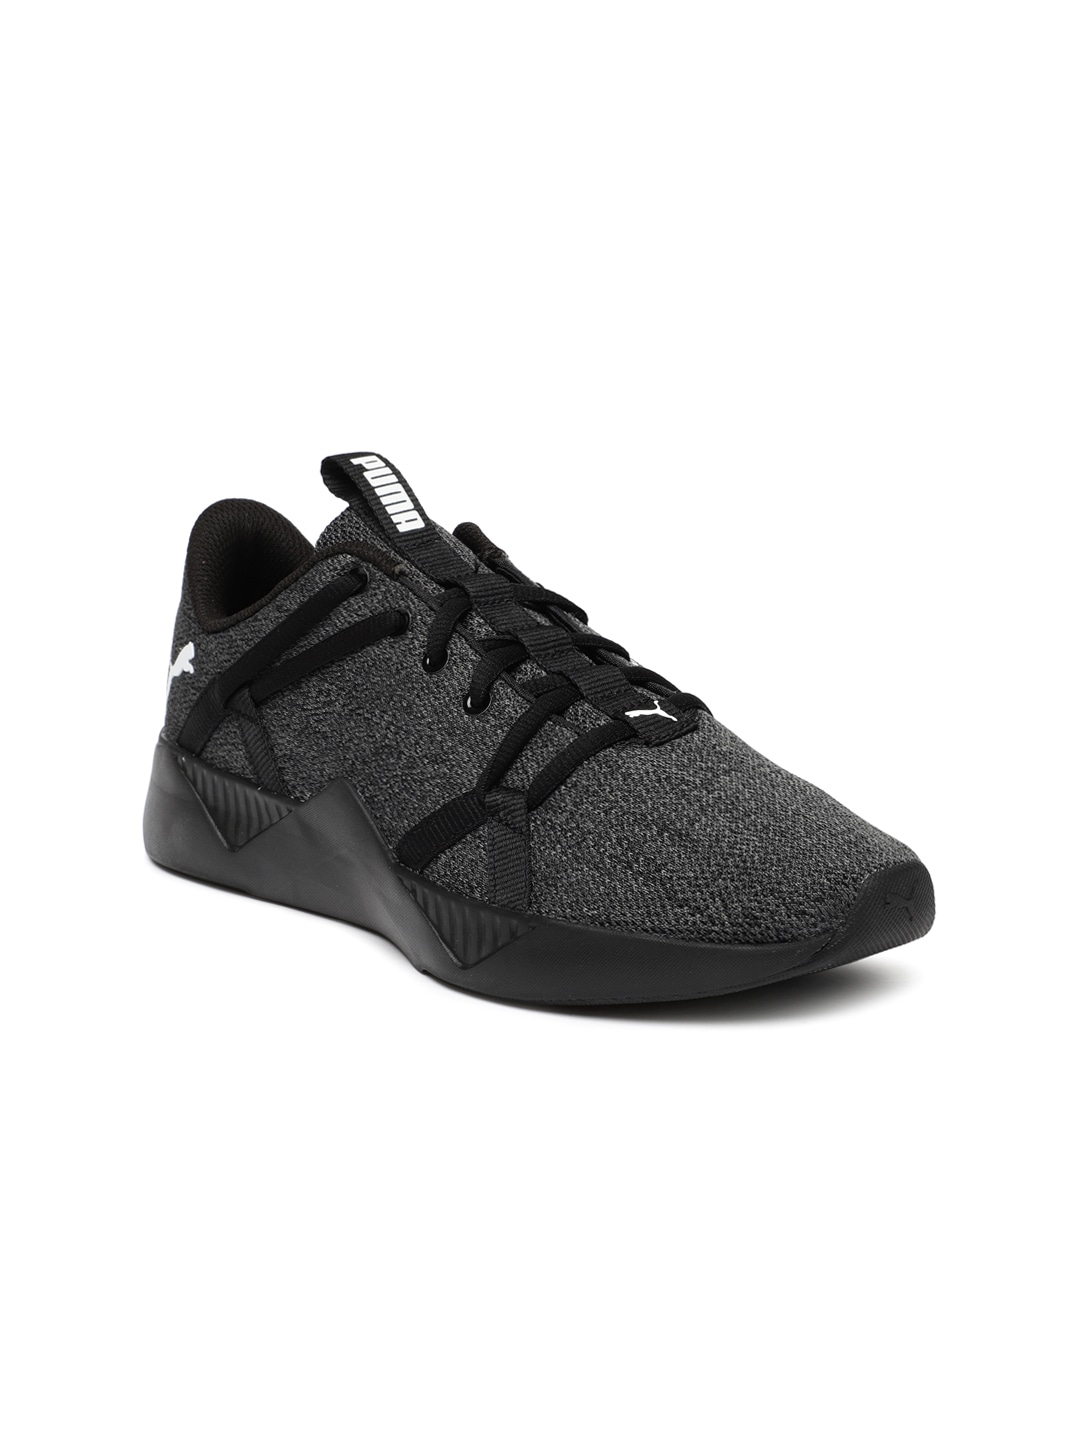 Black Incite Knitted Training Shoes